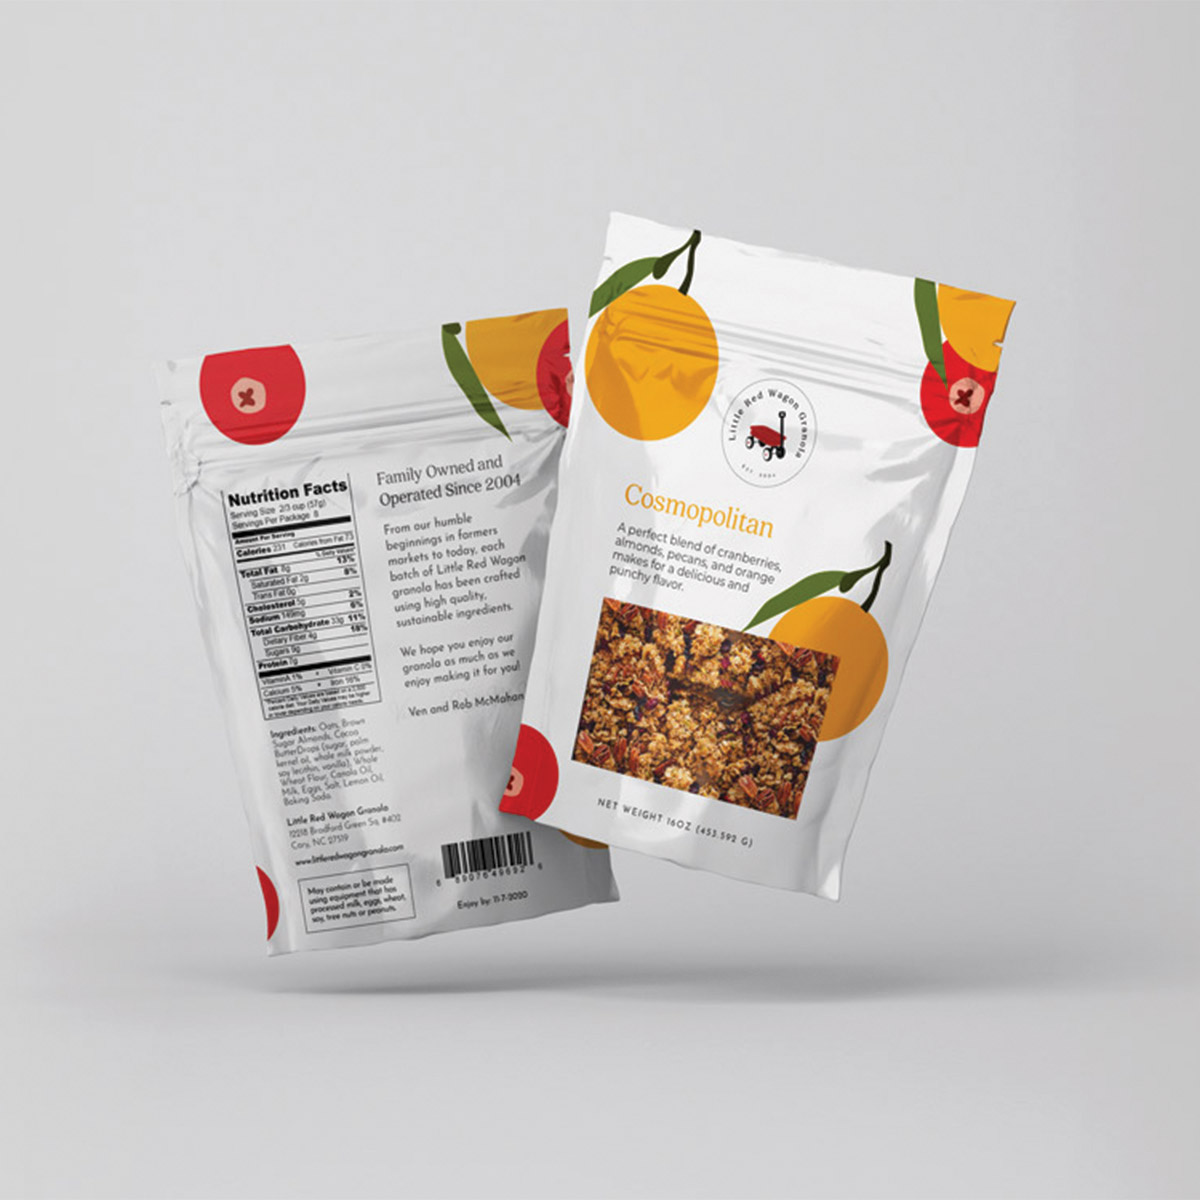 Little Red Wagon Granola Cosmopolitan flavor; sustainable food packaging